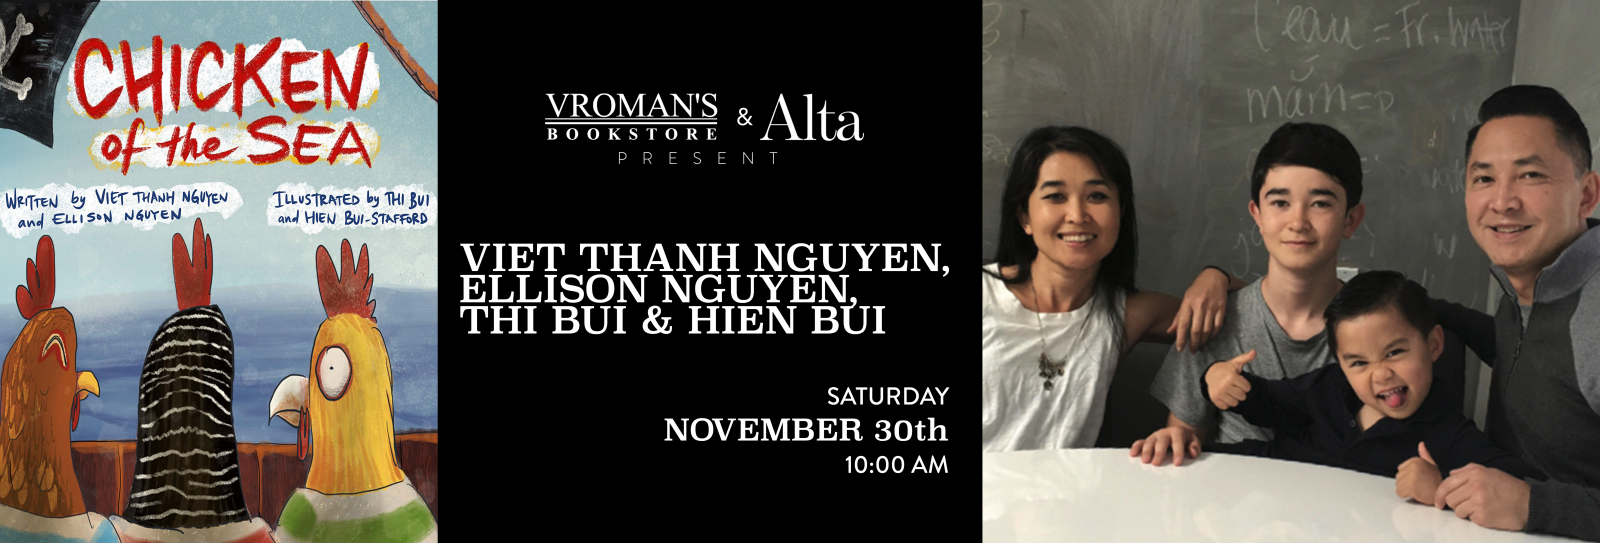 Viet Thanh Nguyen, Ellison Nguyen, Thi Bui and Hien Bui  book signing November 30th at 10:00am